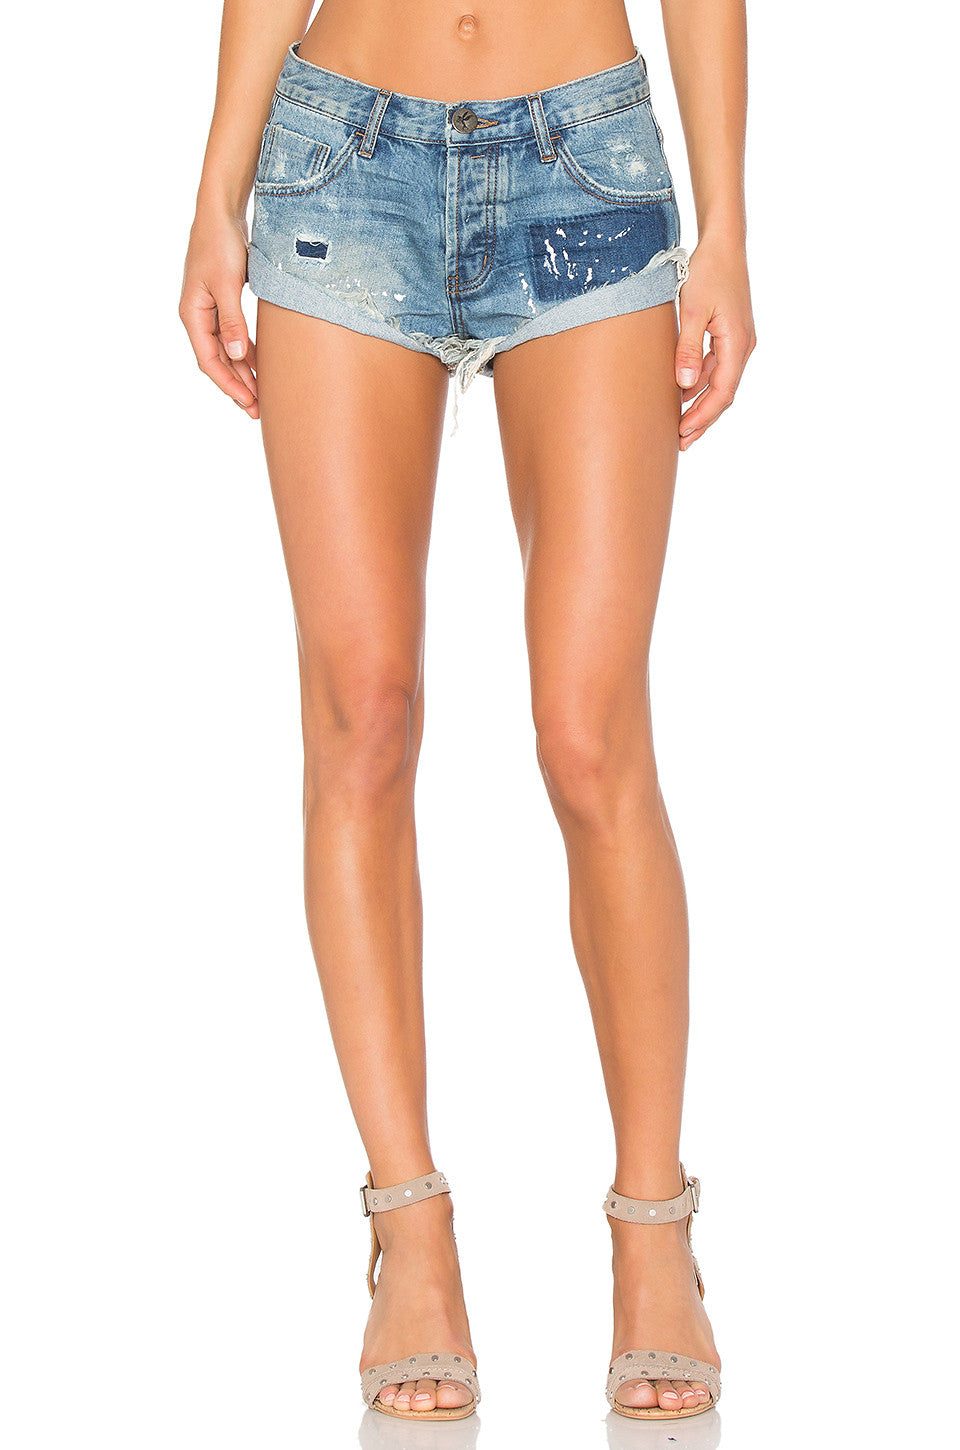 ONE TEASPOON : JOHNNIE BLUE BANDITS DISTRESSED DENIM SHORTS - 85 86 eightyfiveightysix